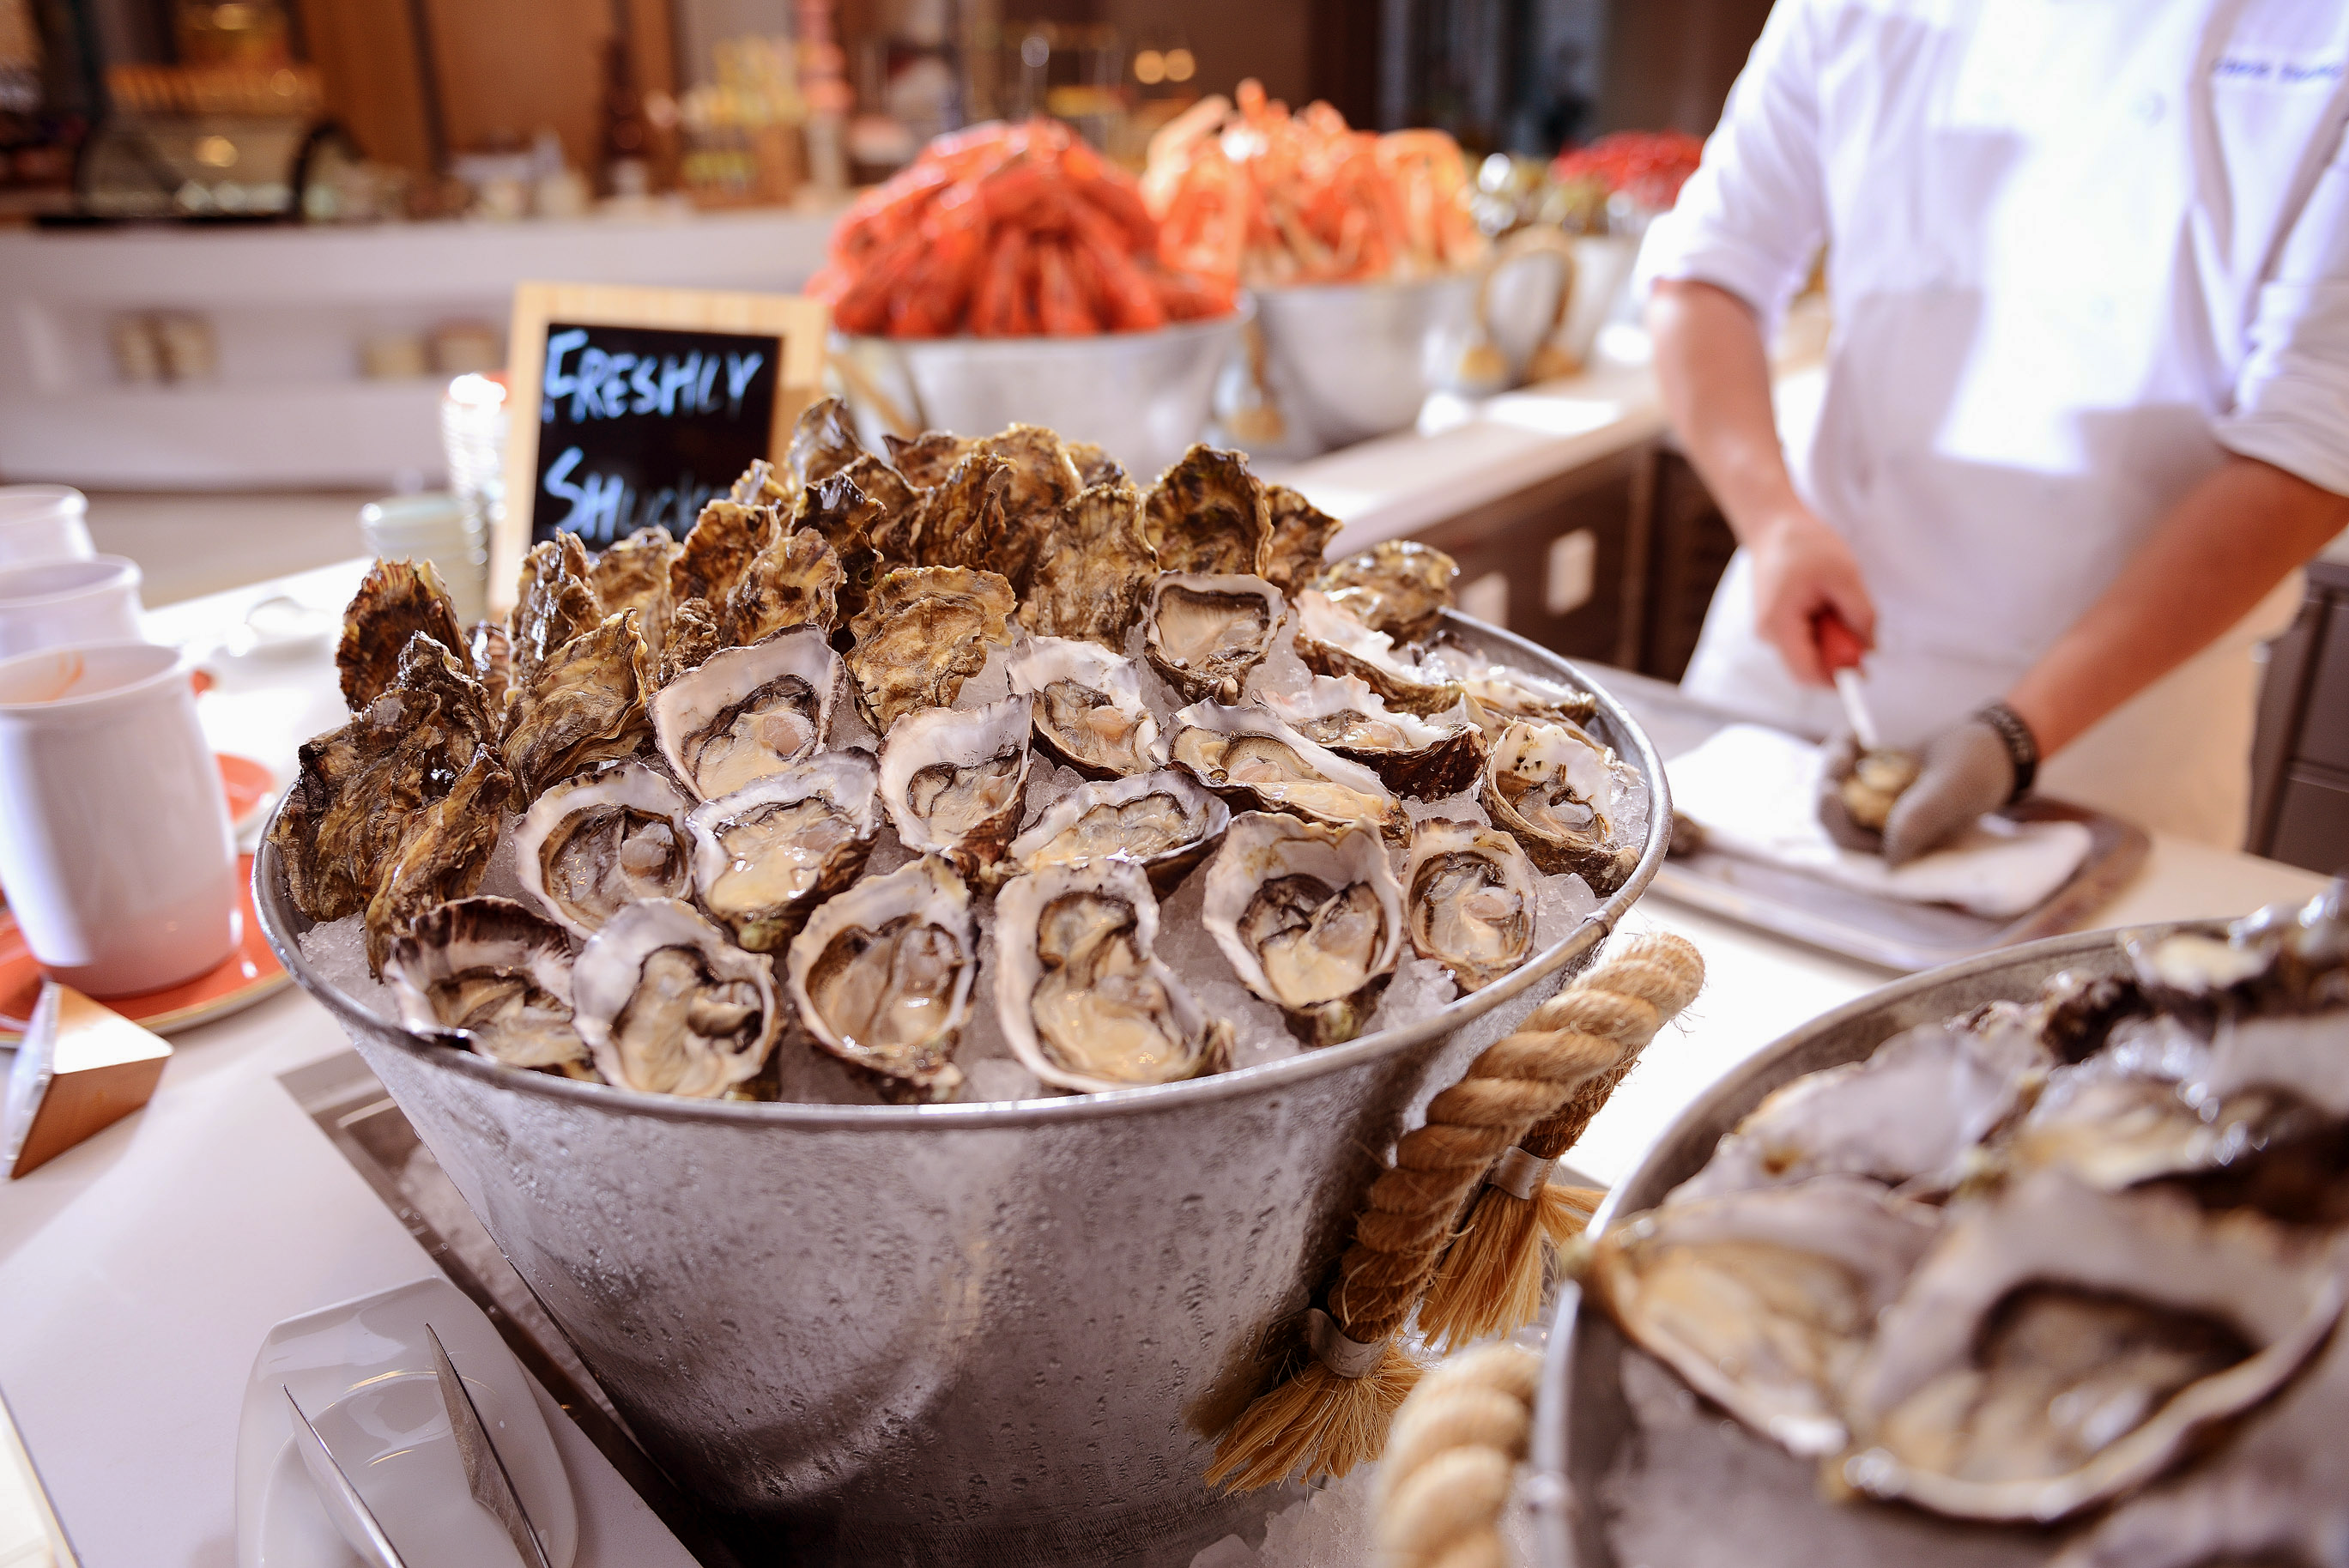 the-place-freshly-shucked-oysters-1_-%e6%96%b0%e9%ae%ae%e4%be%9b%e6%87%89%e7%9a%84%e6%99%82%e4%bb%a4%e5%8d%b3%e9%96%8b%e7%94%9f%e8%a0%941